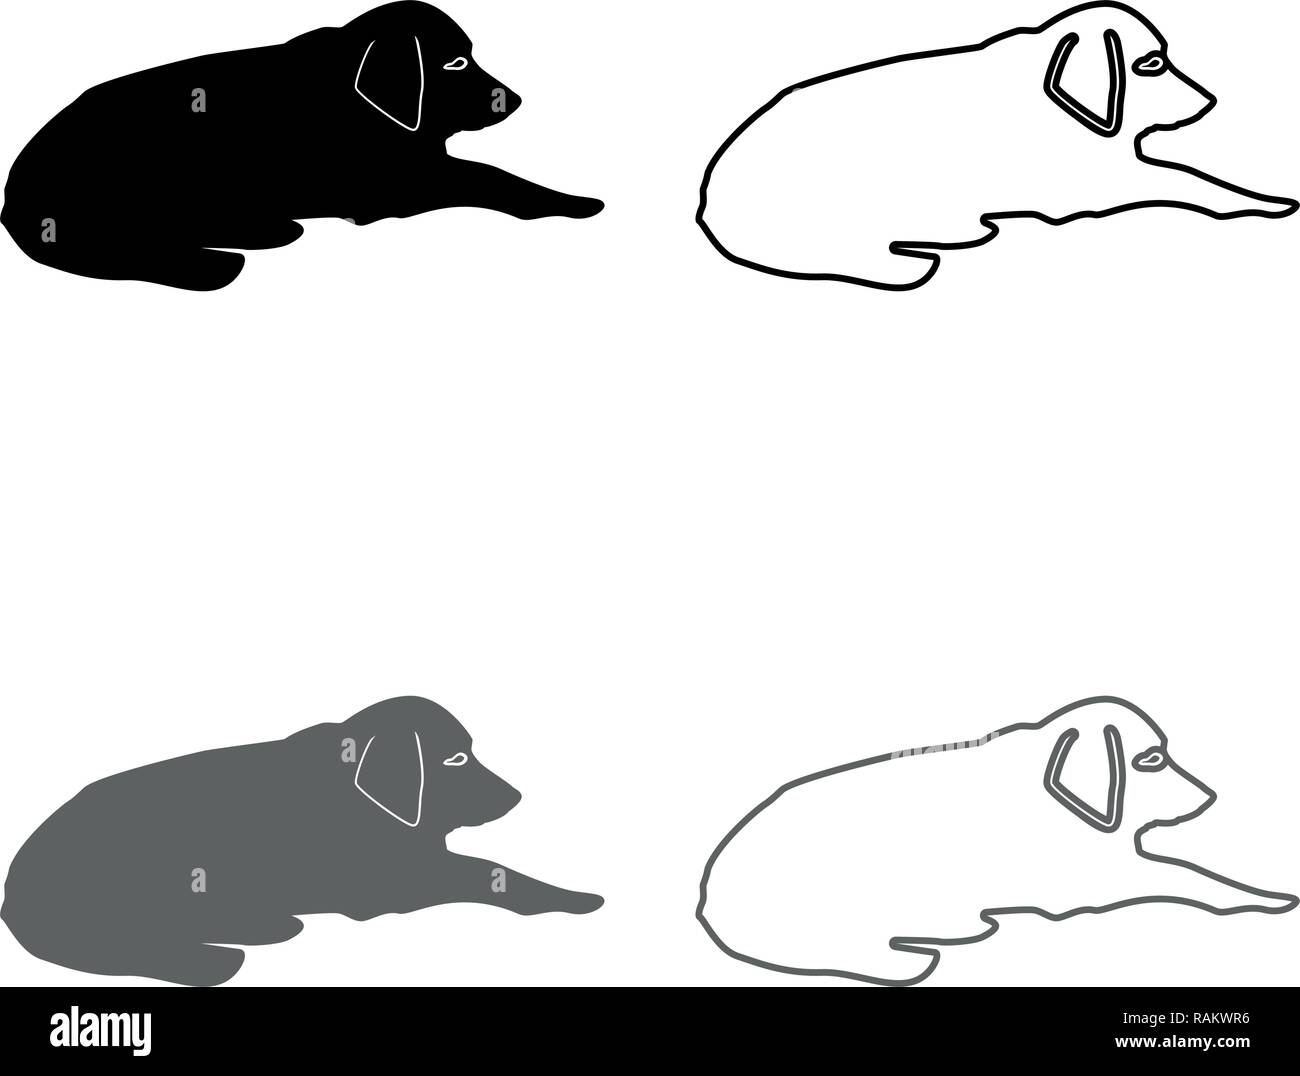 Dog lie on street Pet lying on ground Relaxed doggy icon set grey black color vector I outline flat style simple image - Stock Image